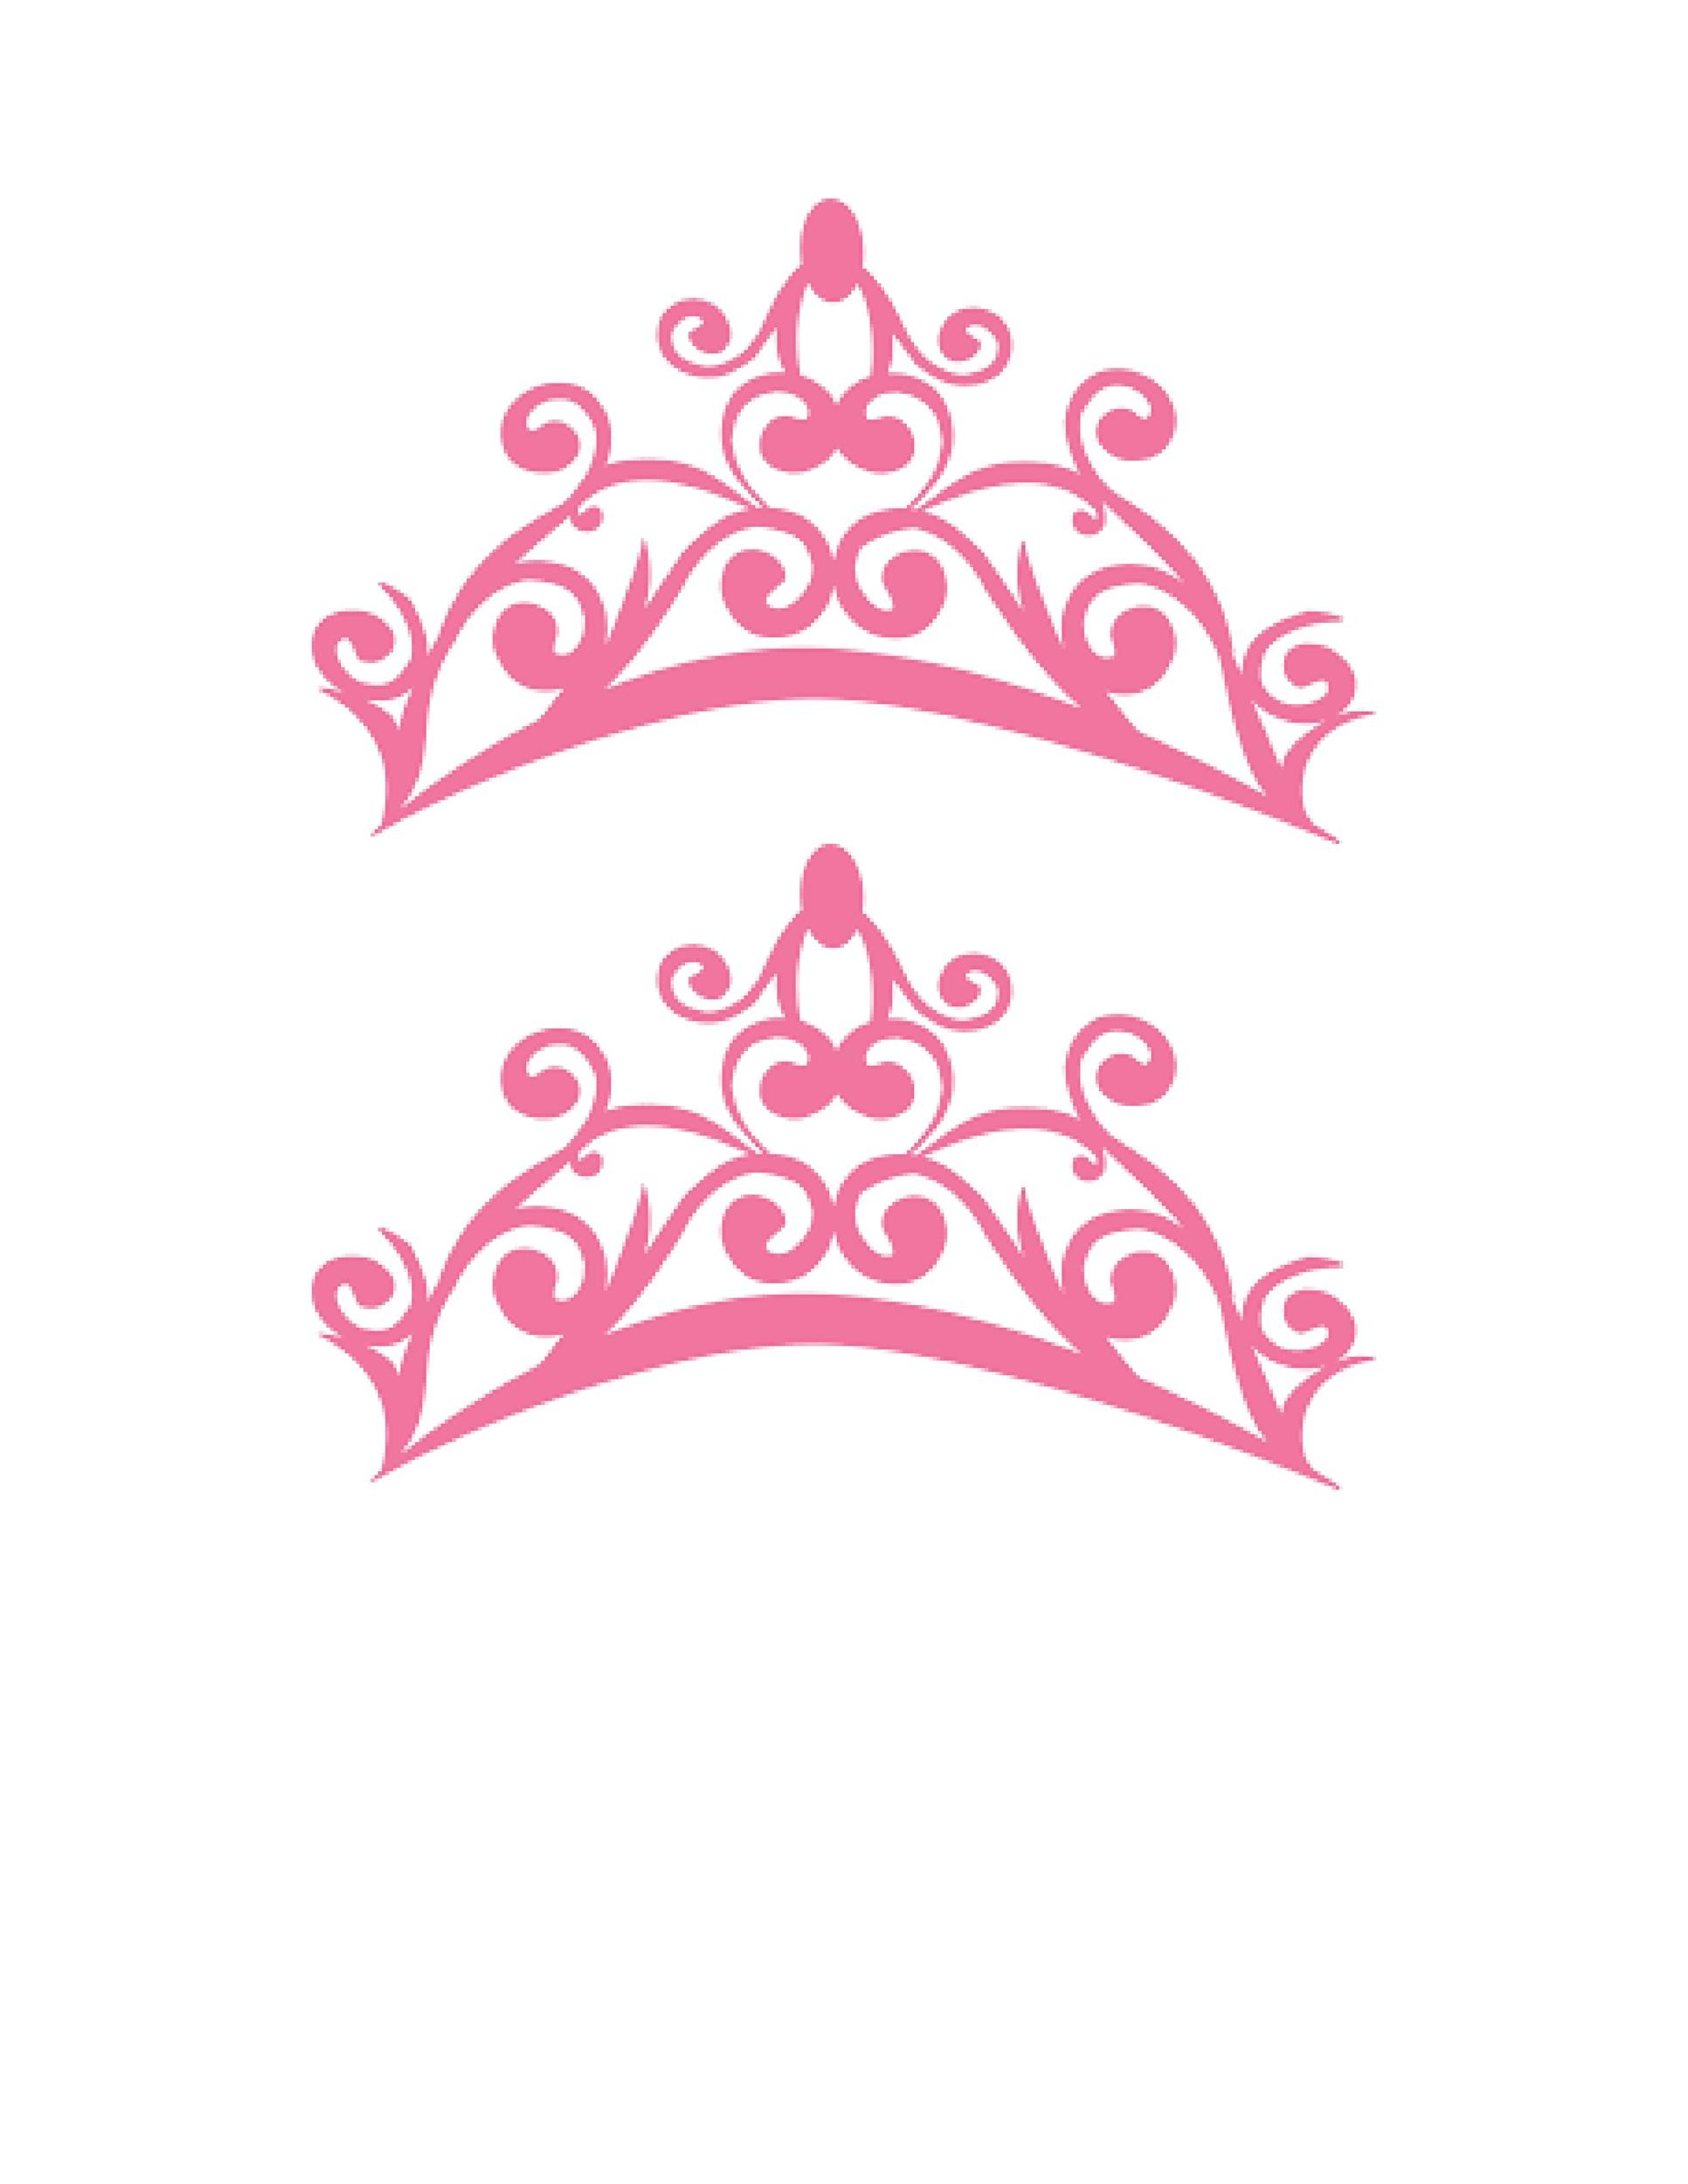 Crown Template 08